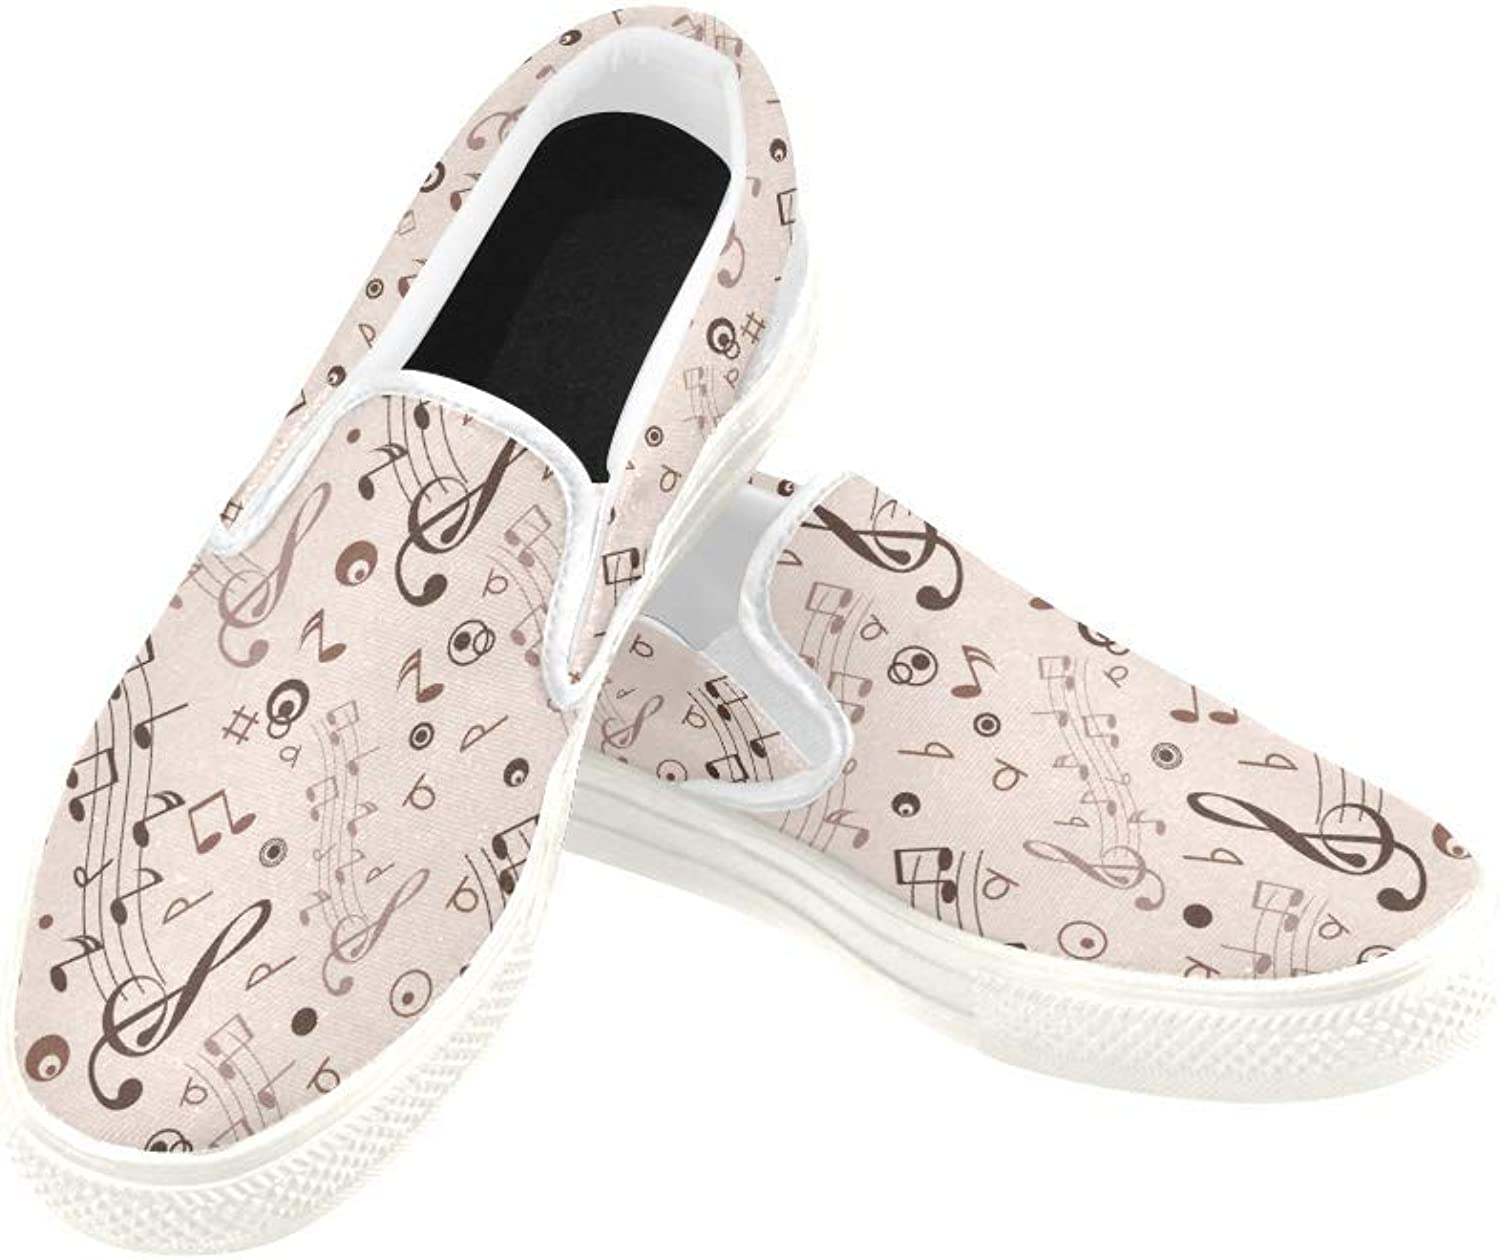 InterestPrint Womens Slip On Canvas shoes Loafers Musical Notes Girls Classic Casual Sneakers Flats